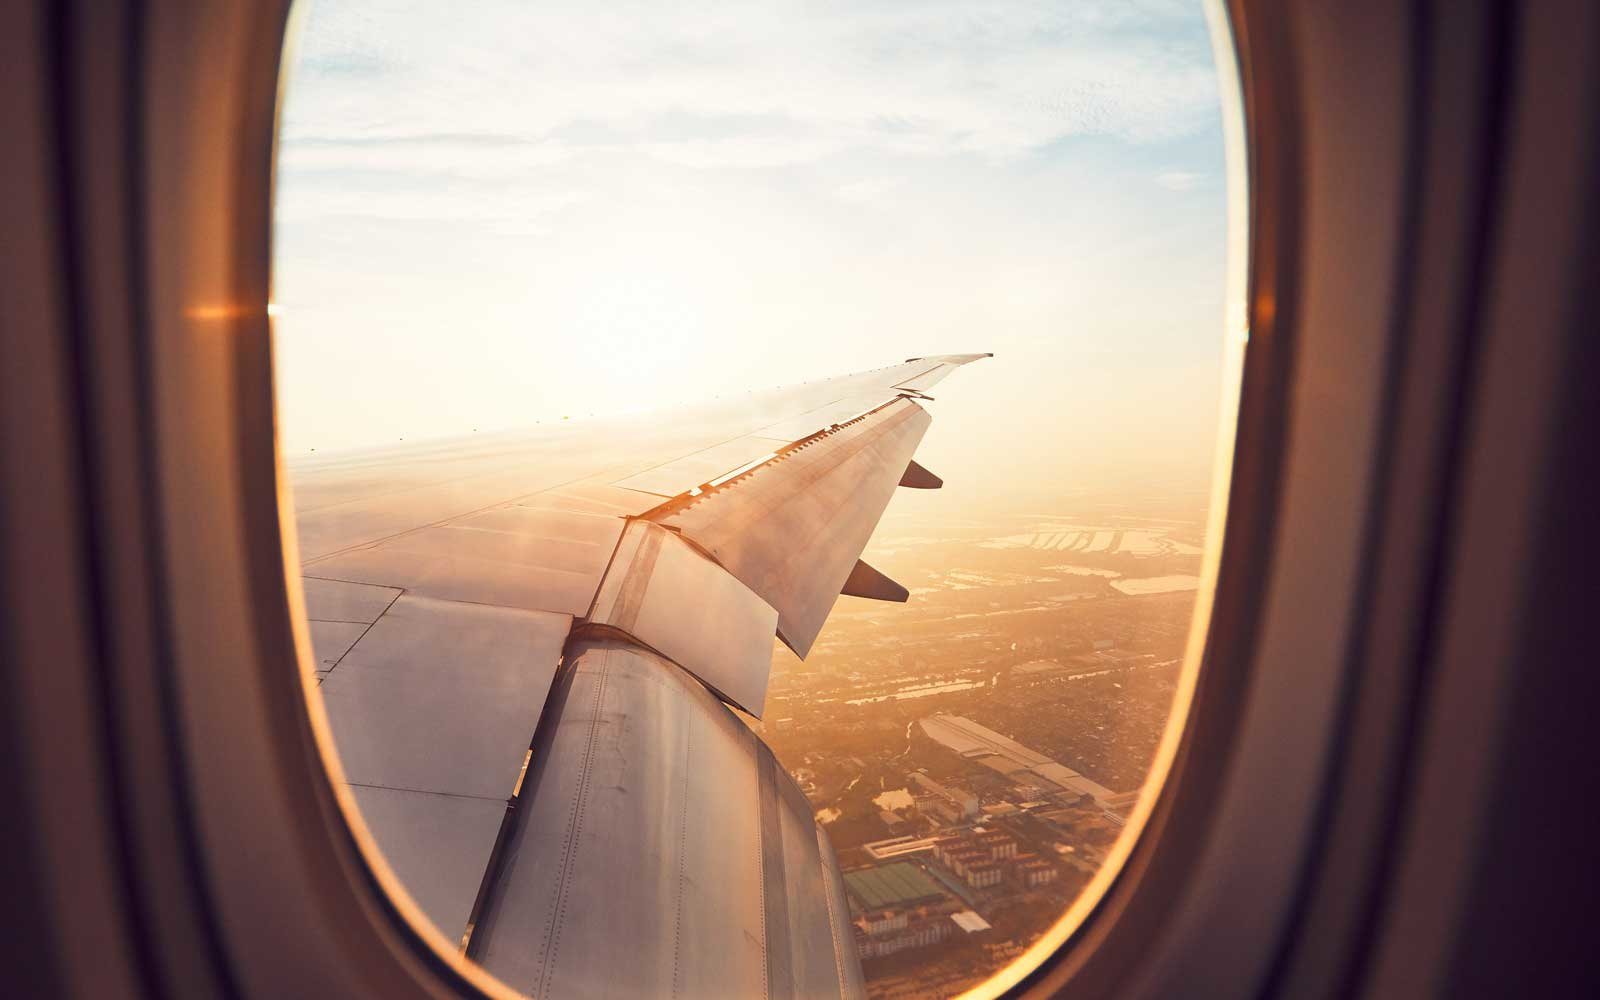 View from the window of the airplane at sunrise. Landing in Bangkok, Thailand.